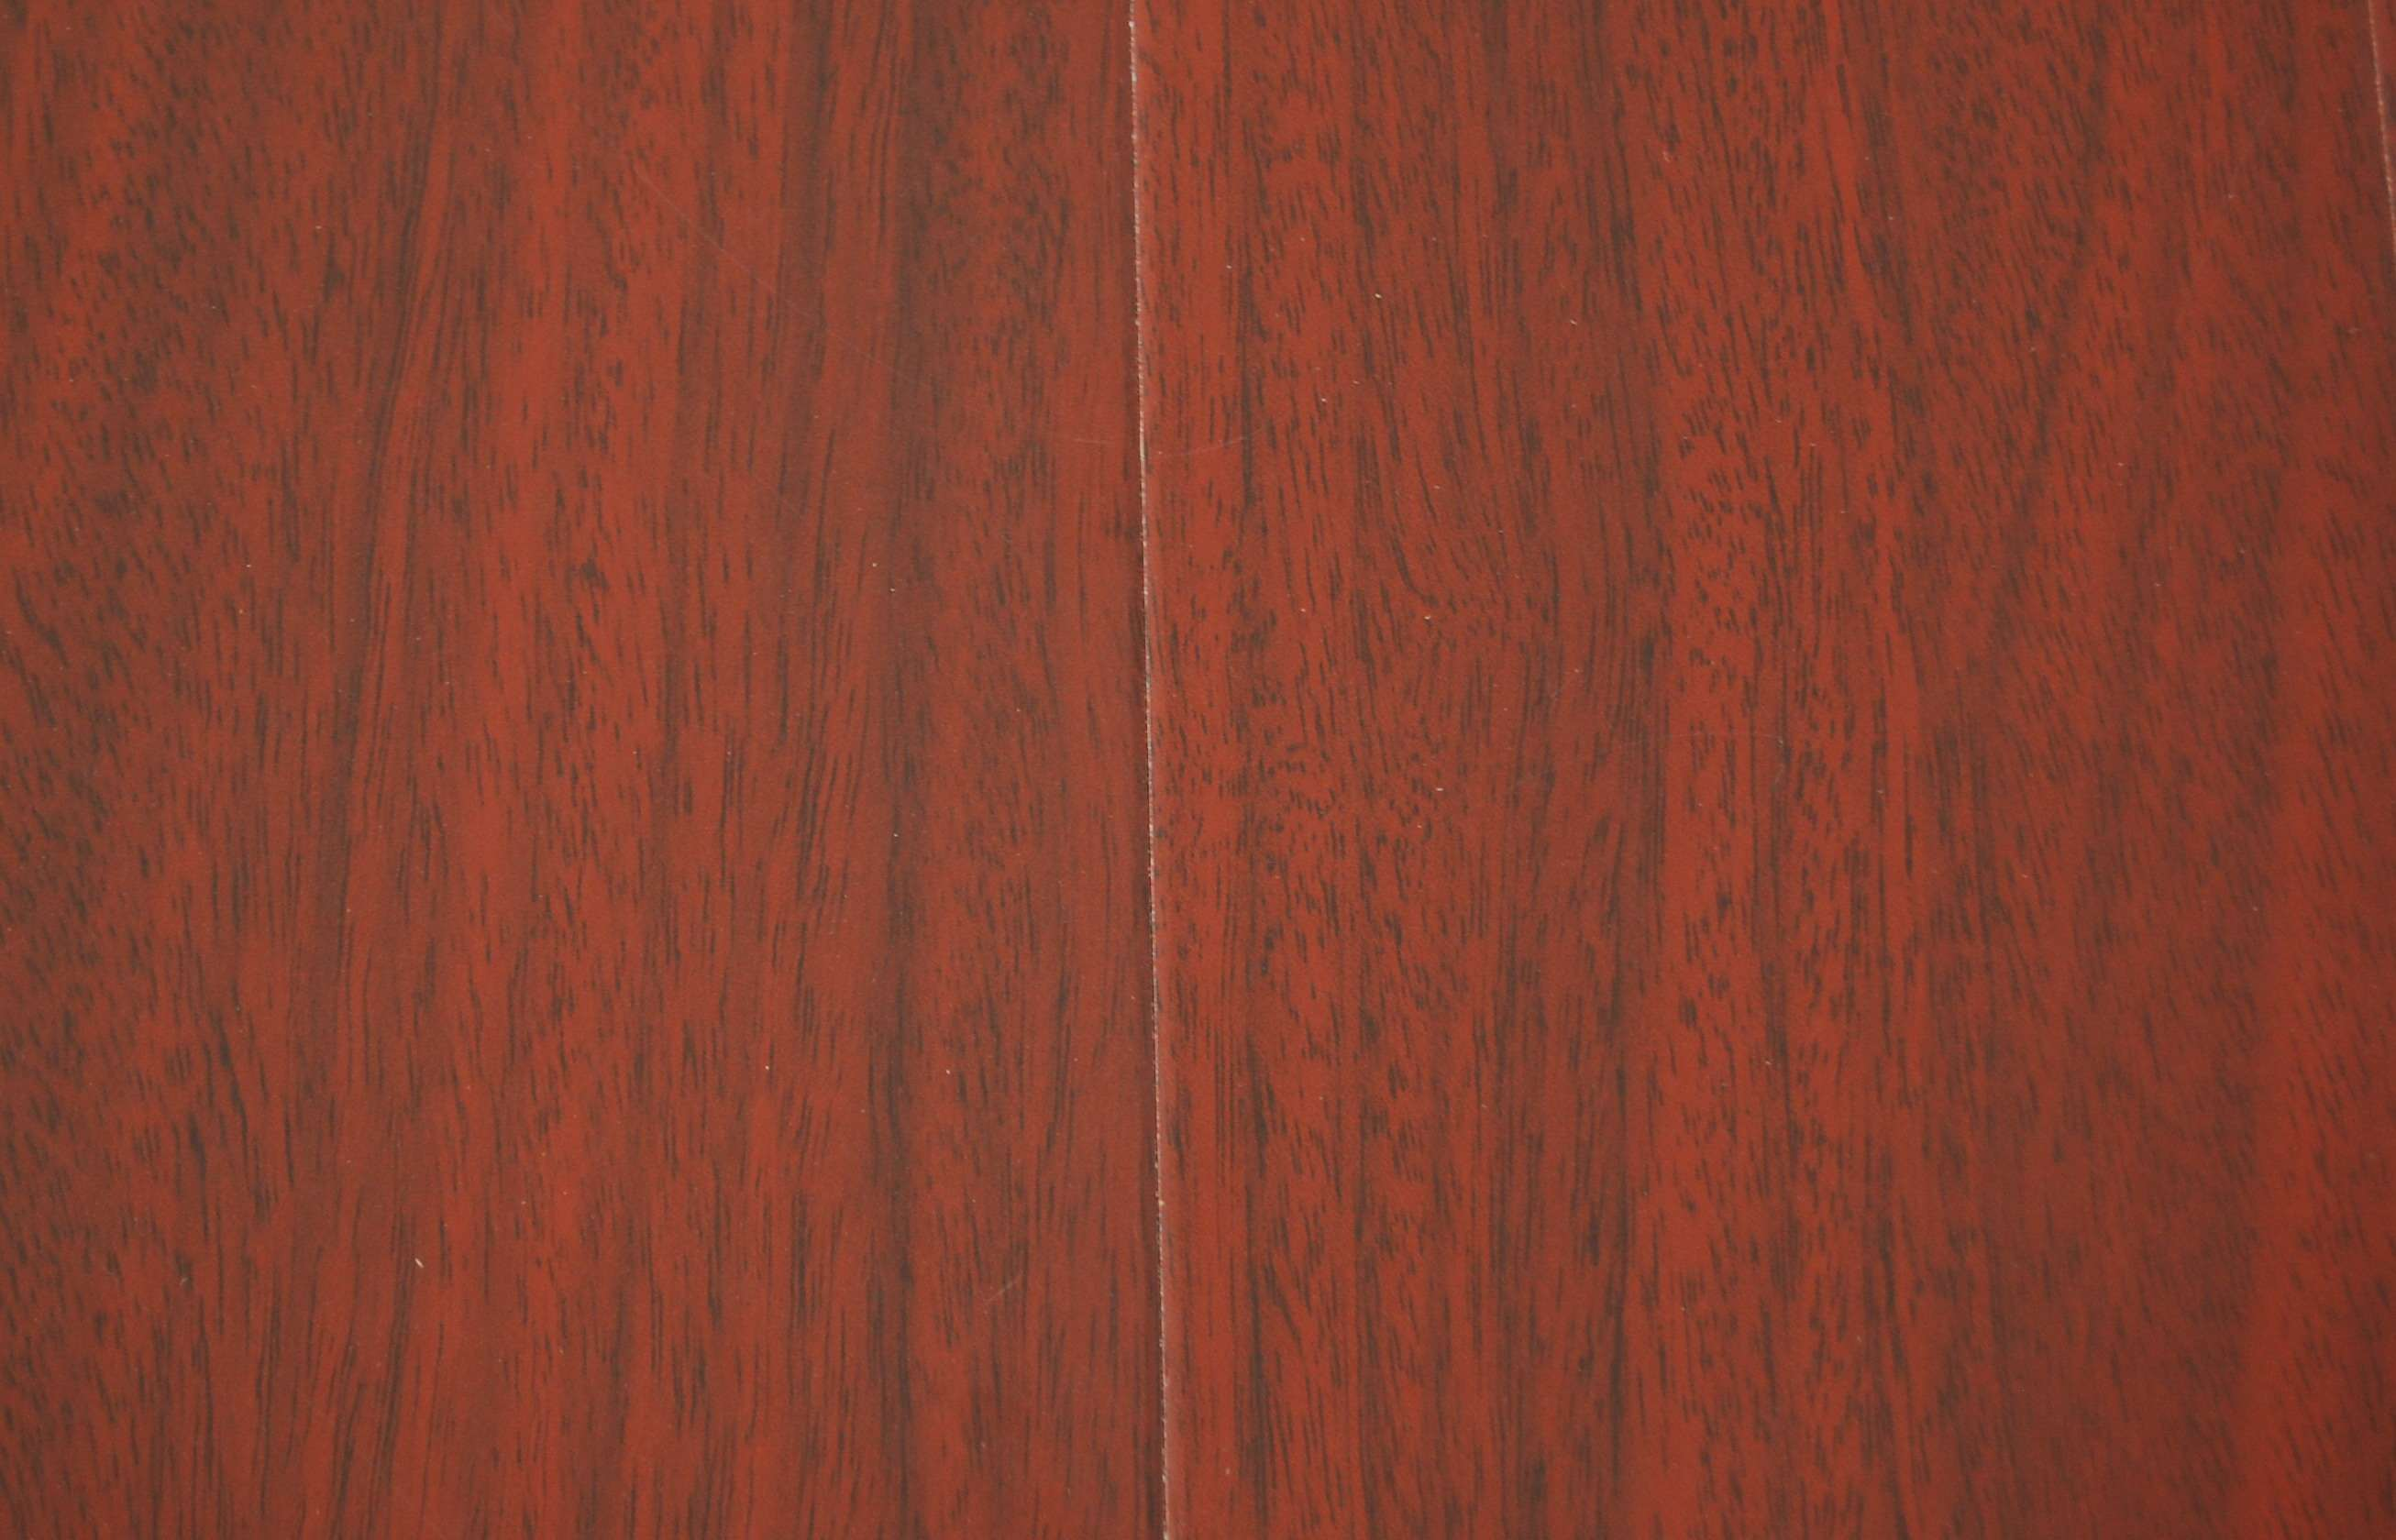 Formica laminate wood flooring images for Formica flooring